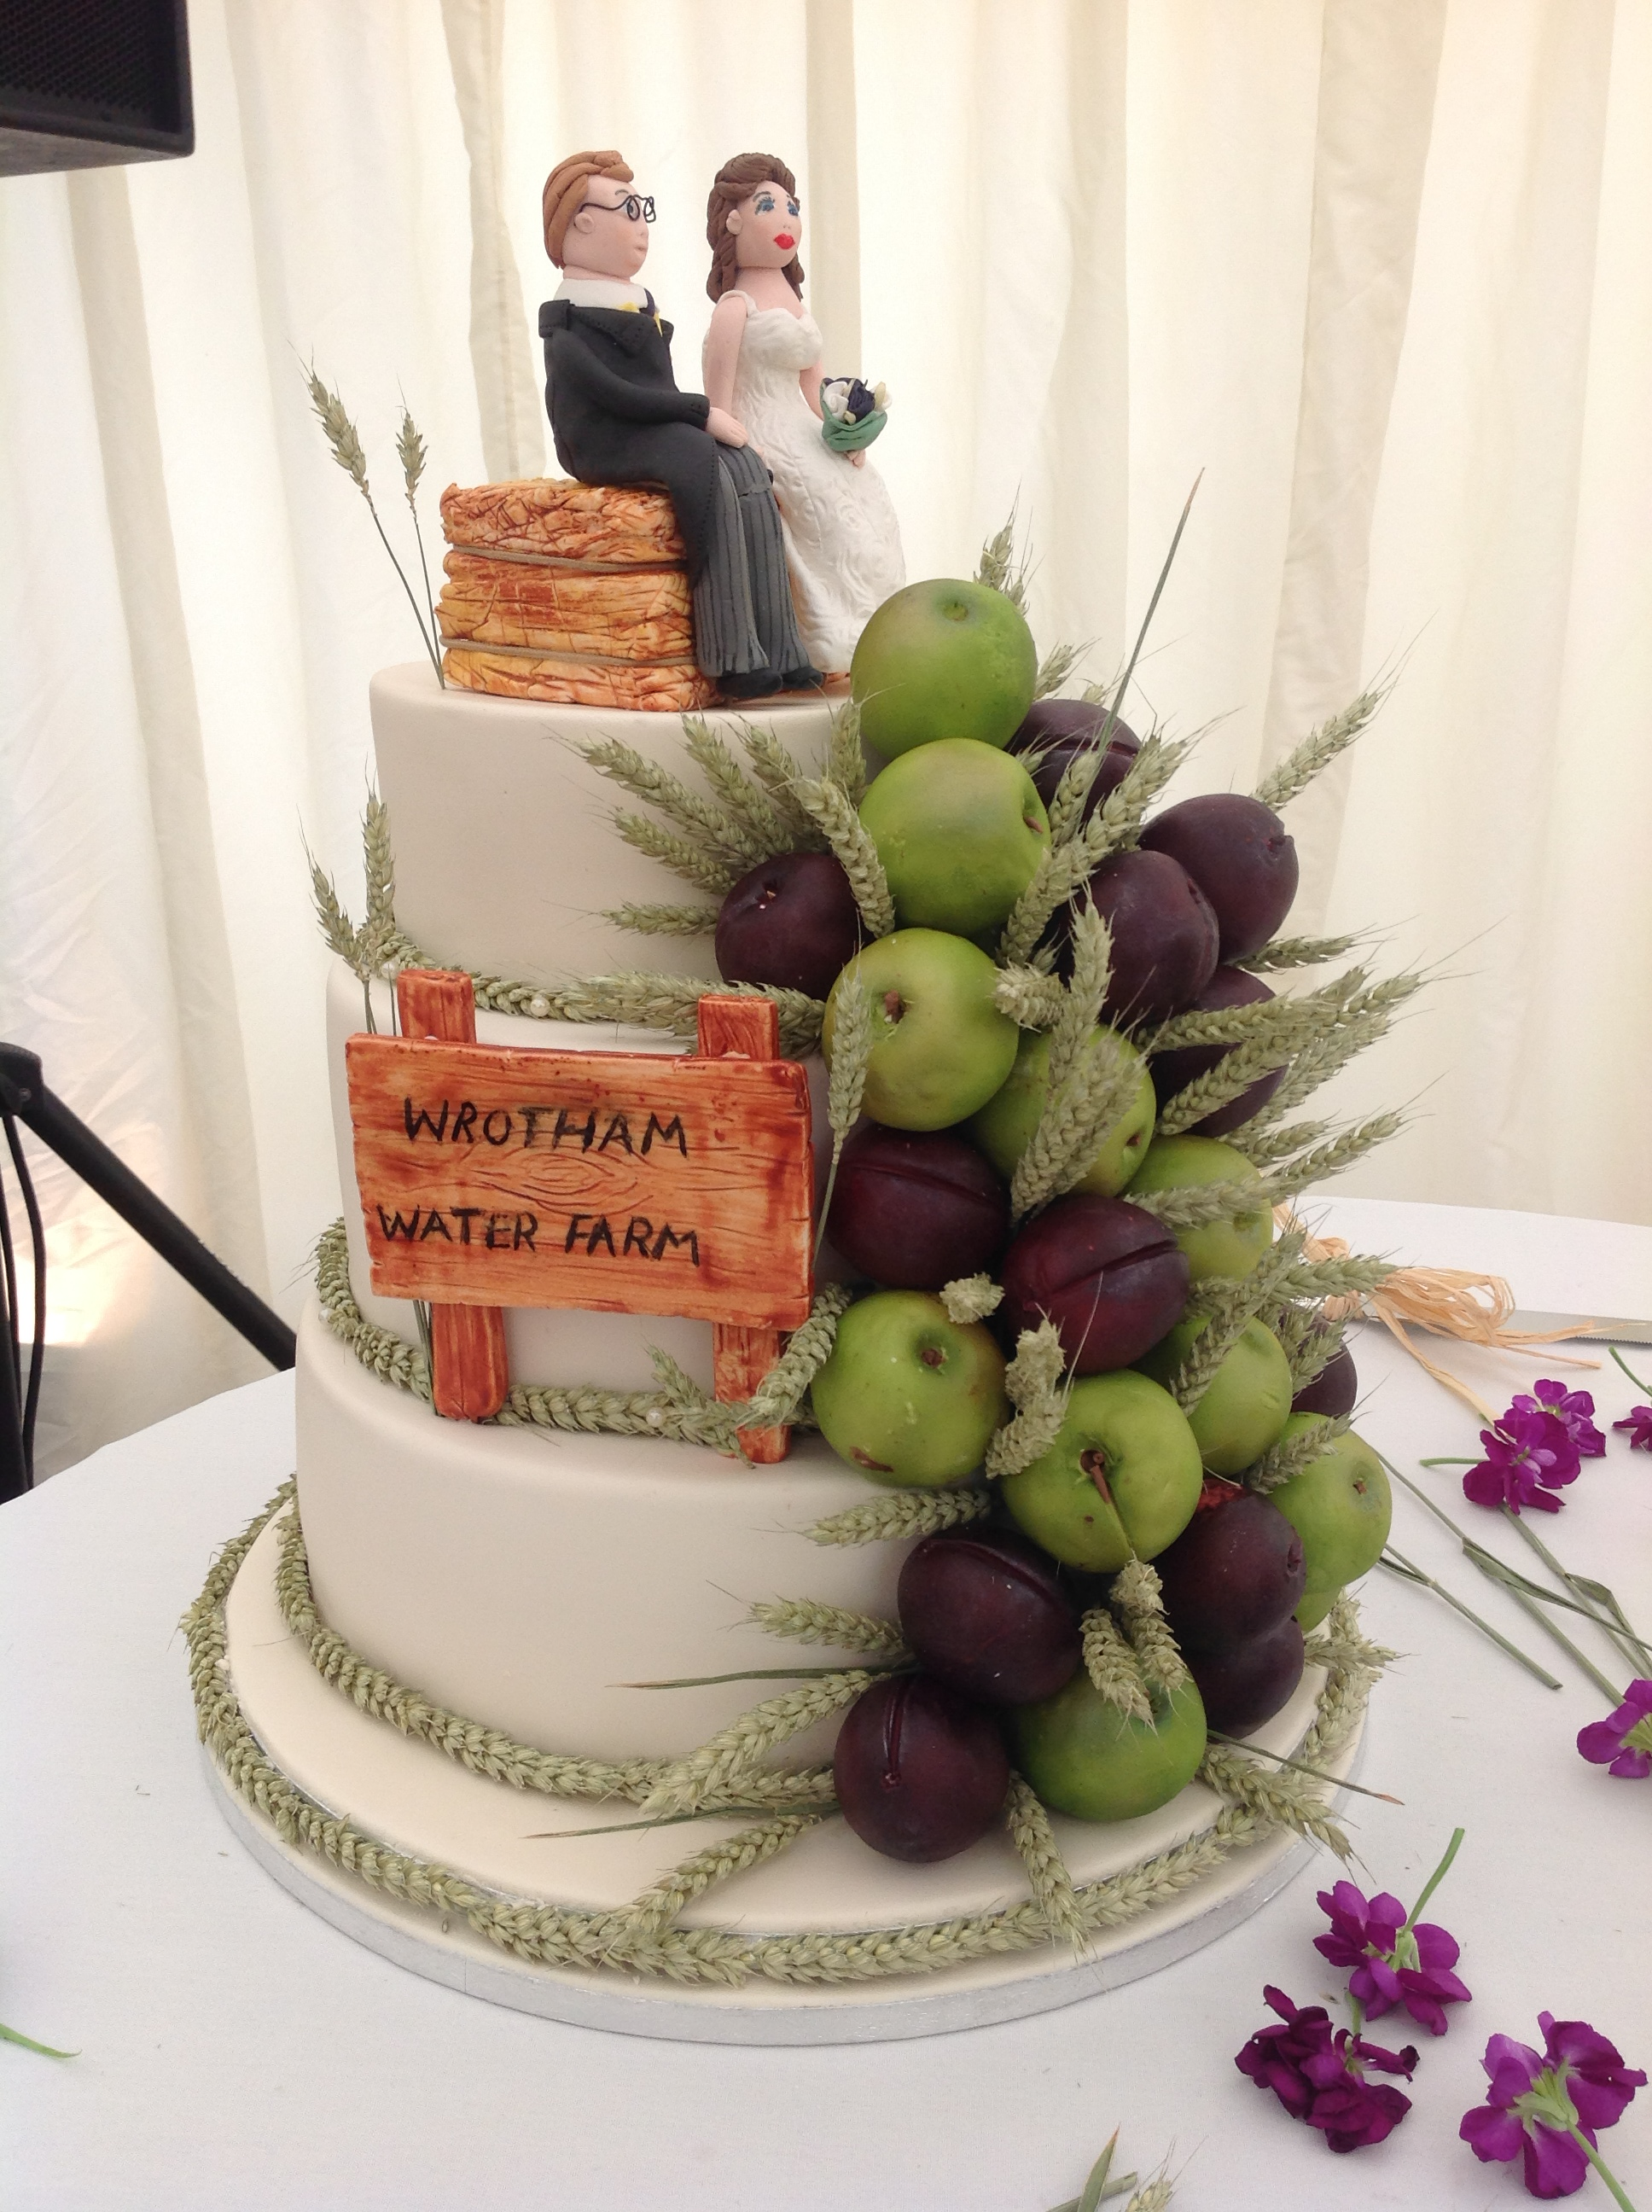 Another Wedding Cake Story A Farmer Dream Jemz Cake Box